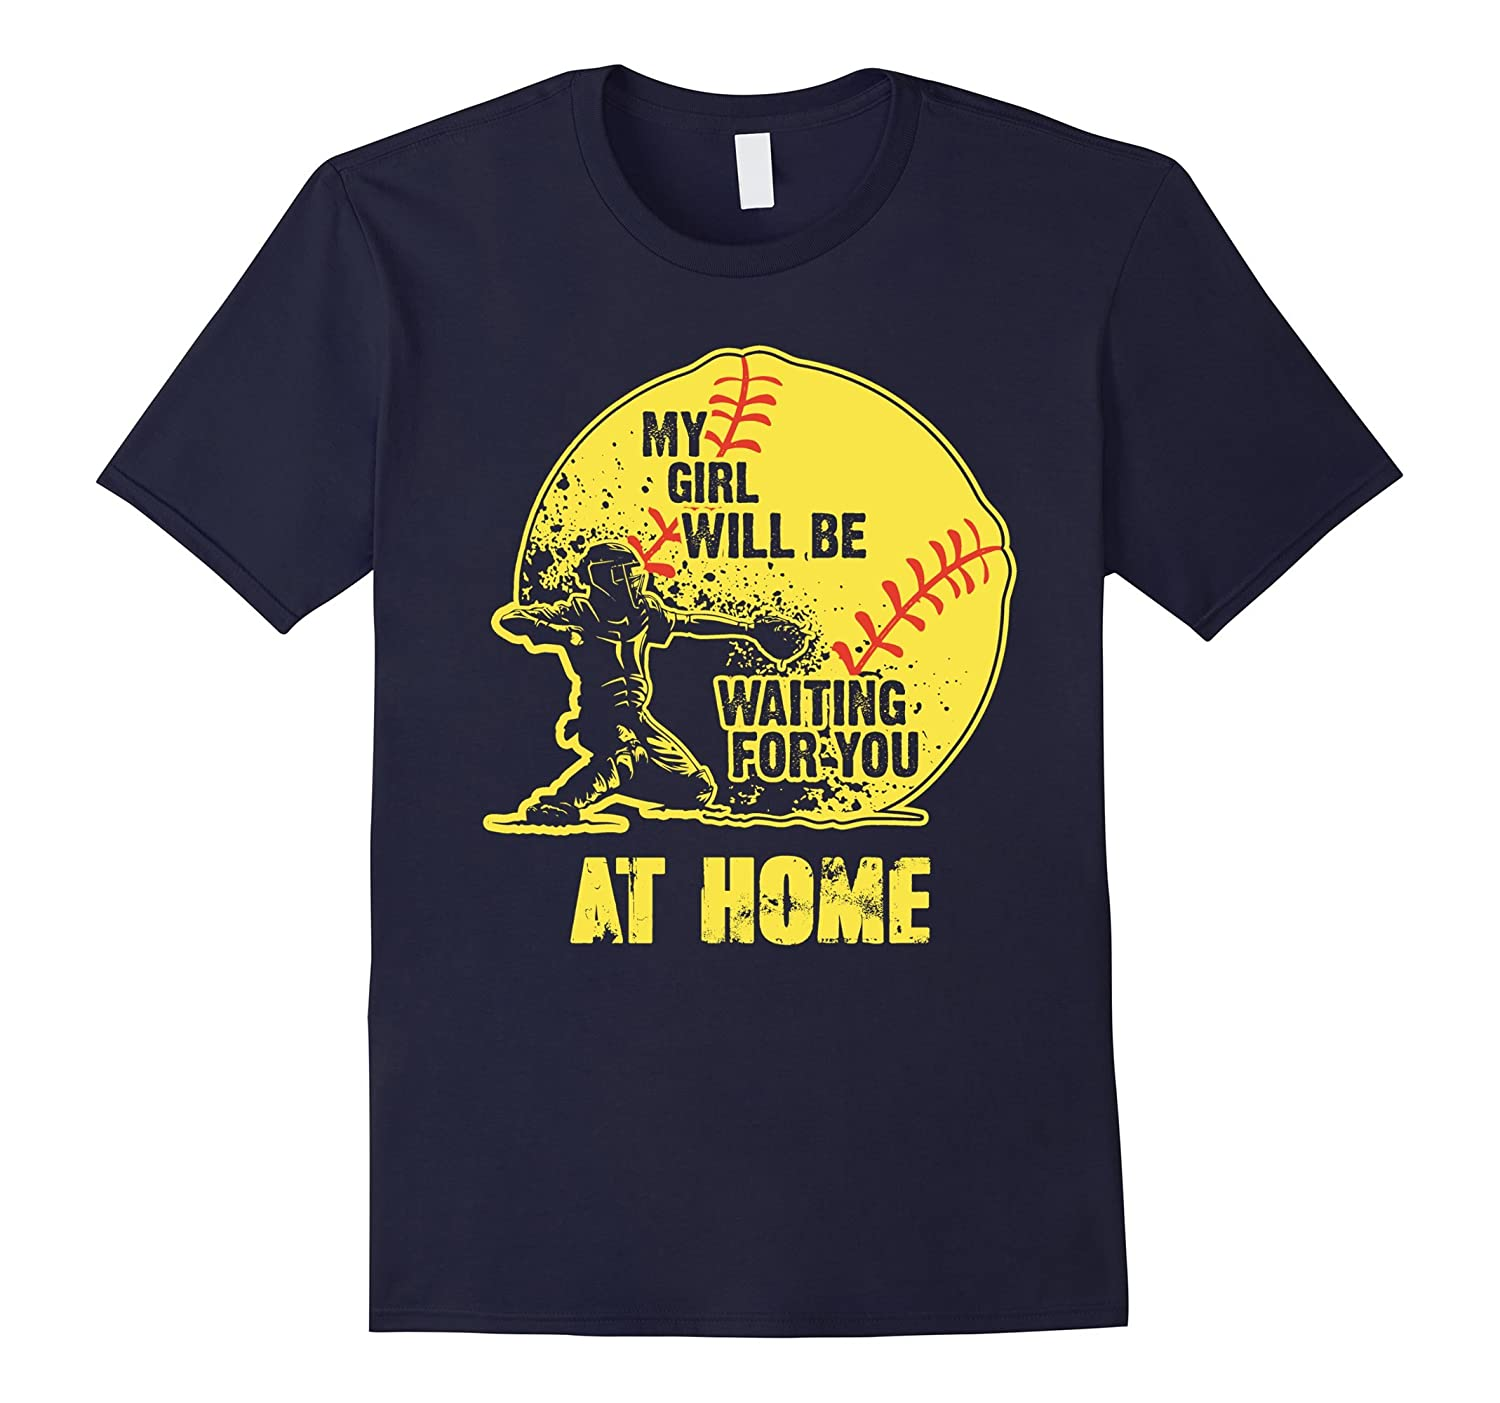 softball shirts - My girl - softball-Art